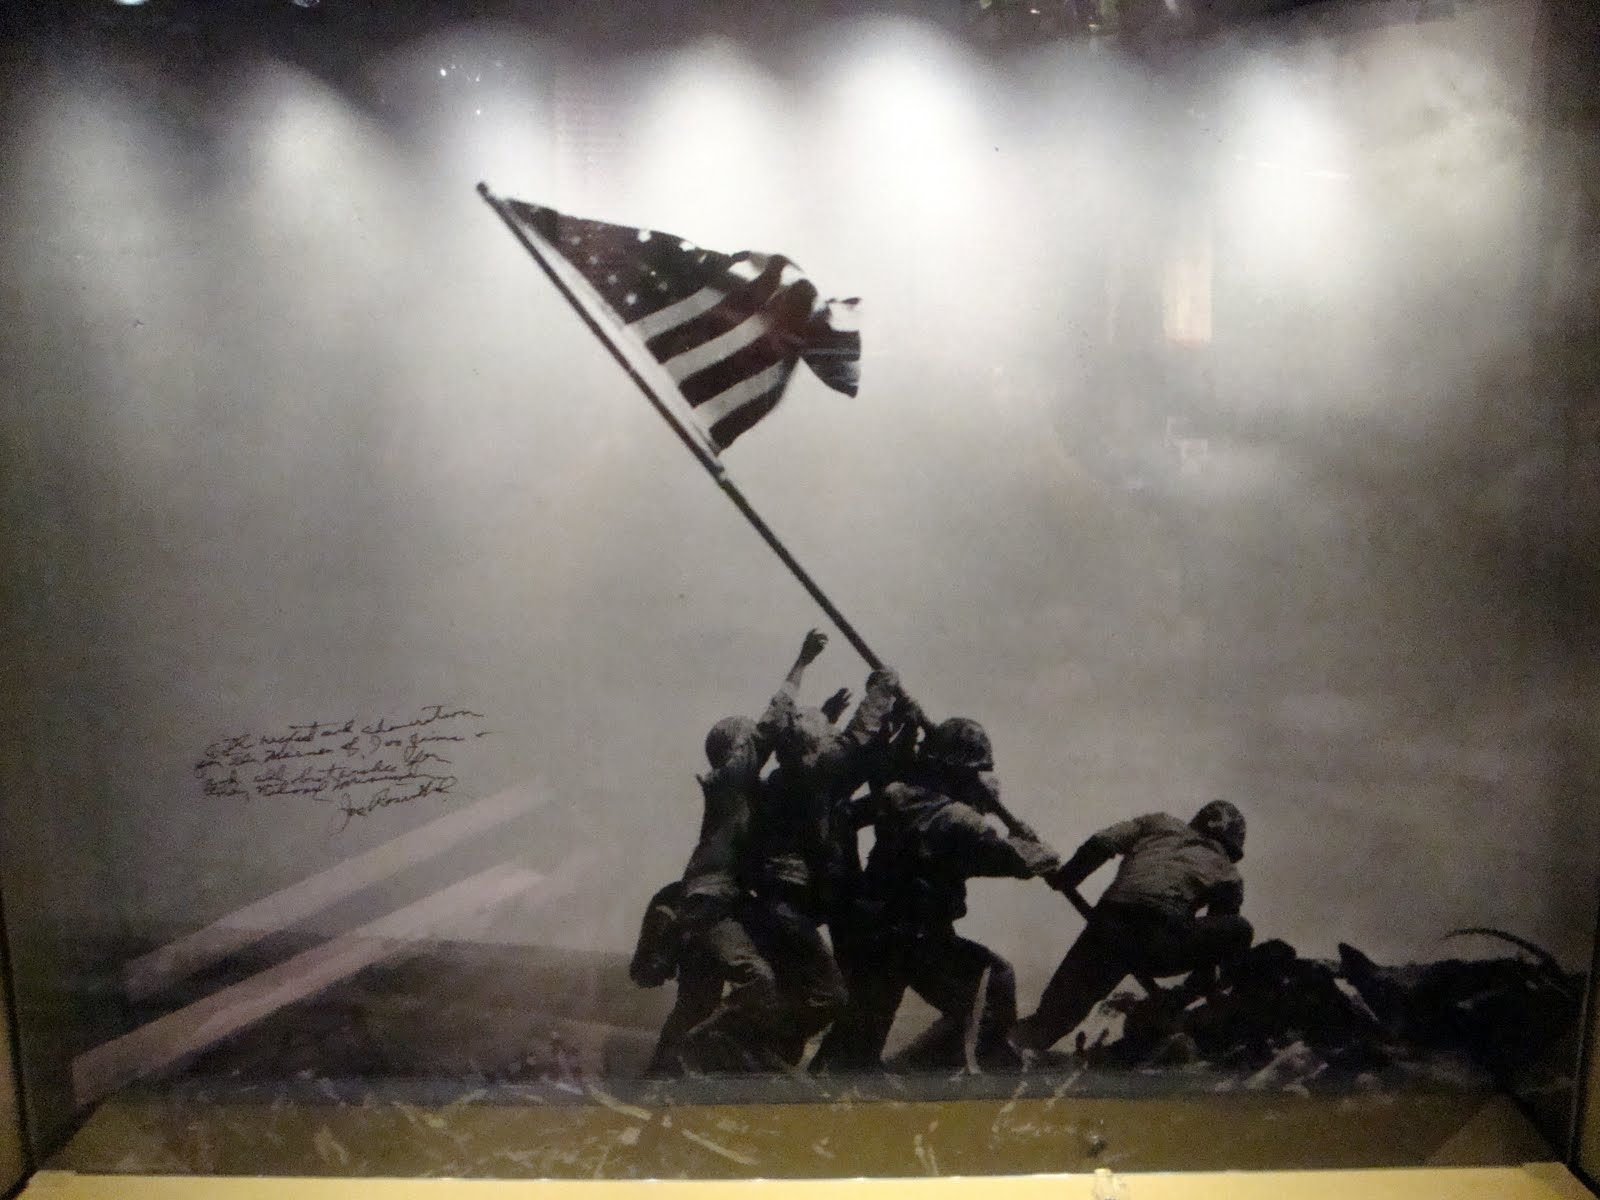 ... iwo jima flag raising wallpaper ... R Sanity RV Adventures The Continuing Story of Iron Mike ...